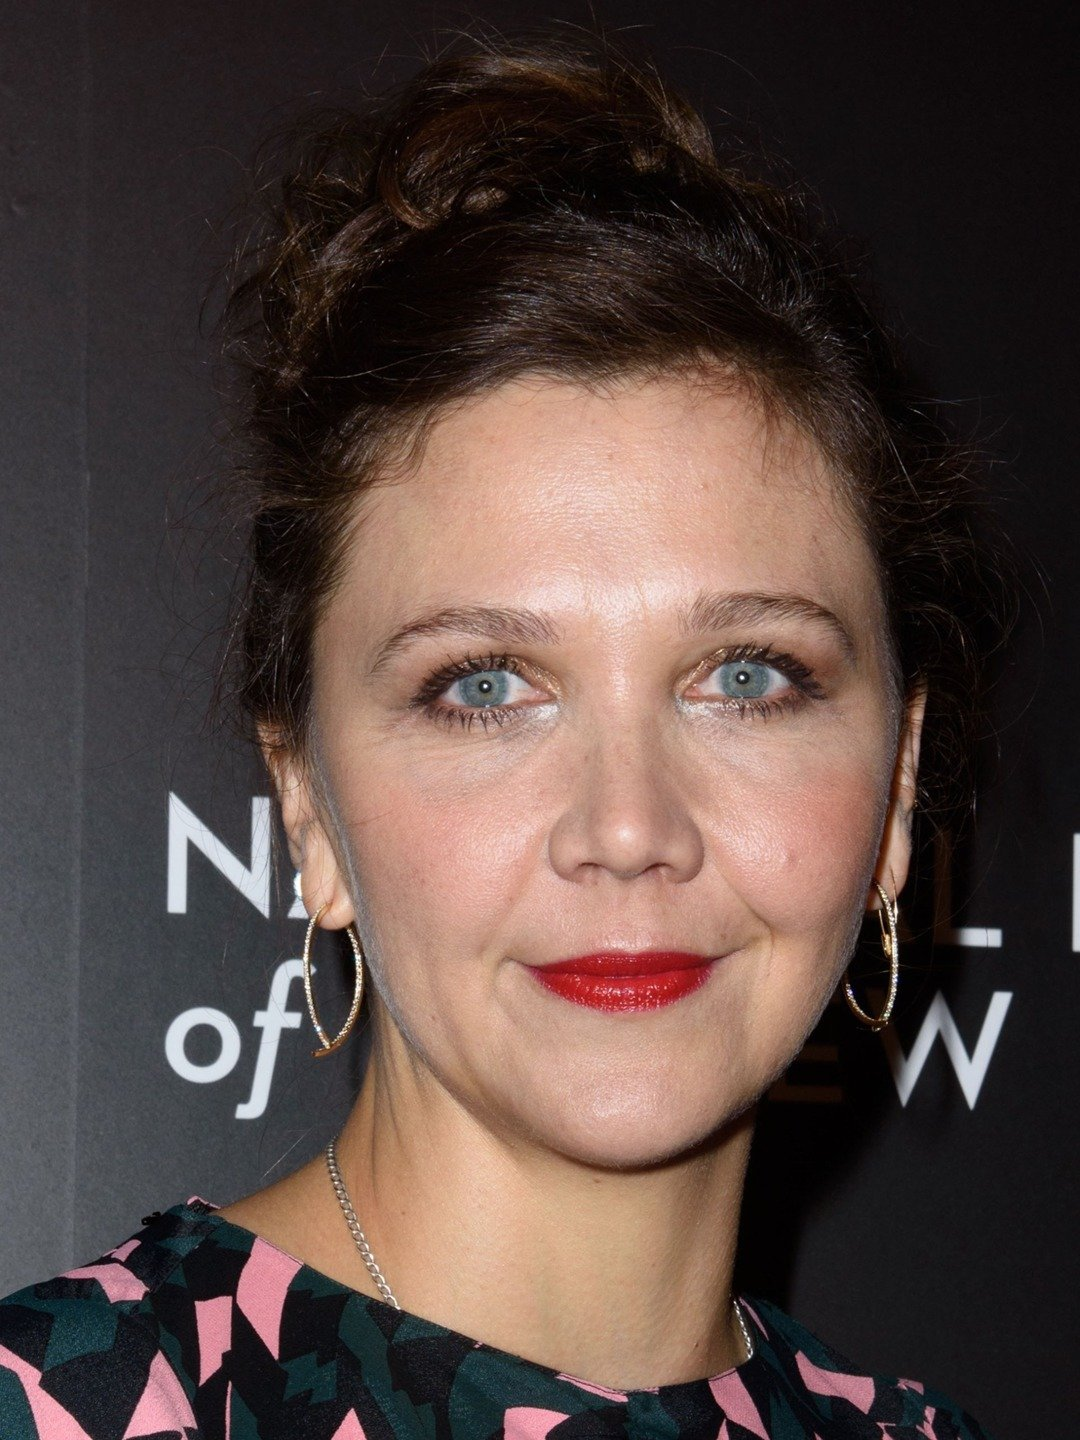 How tall is Maggie Gyllenhaal?